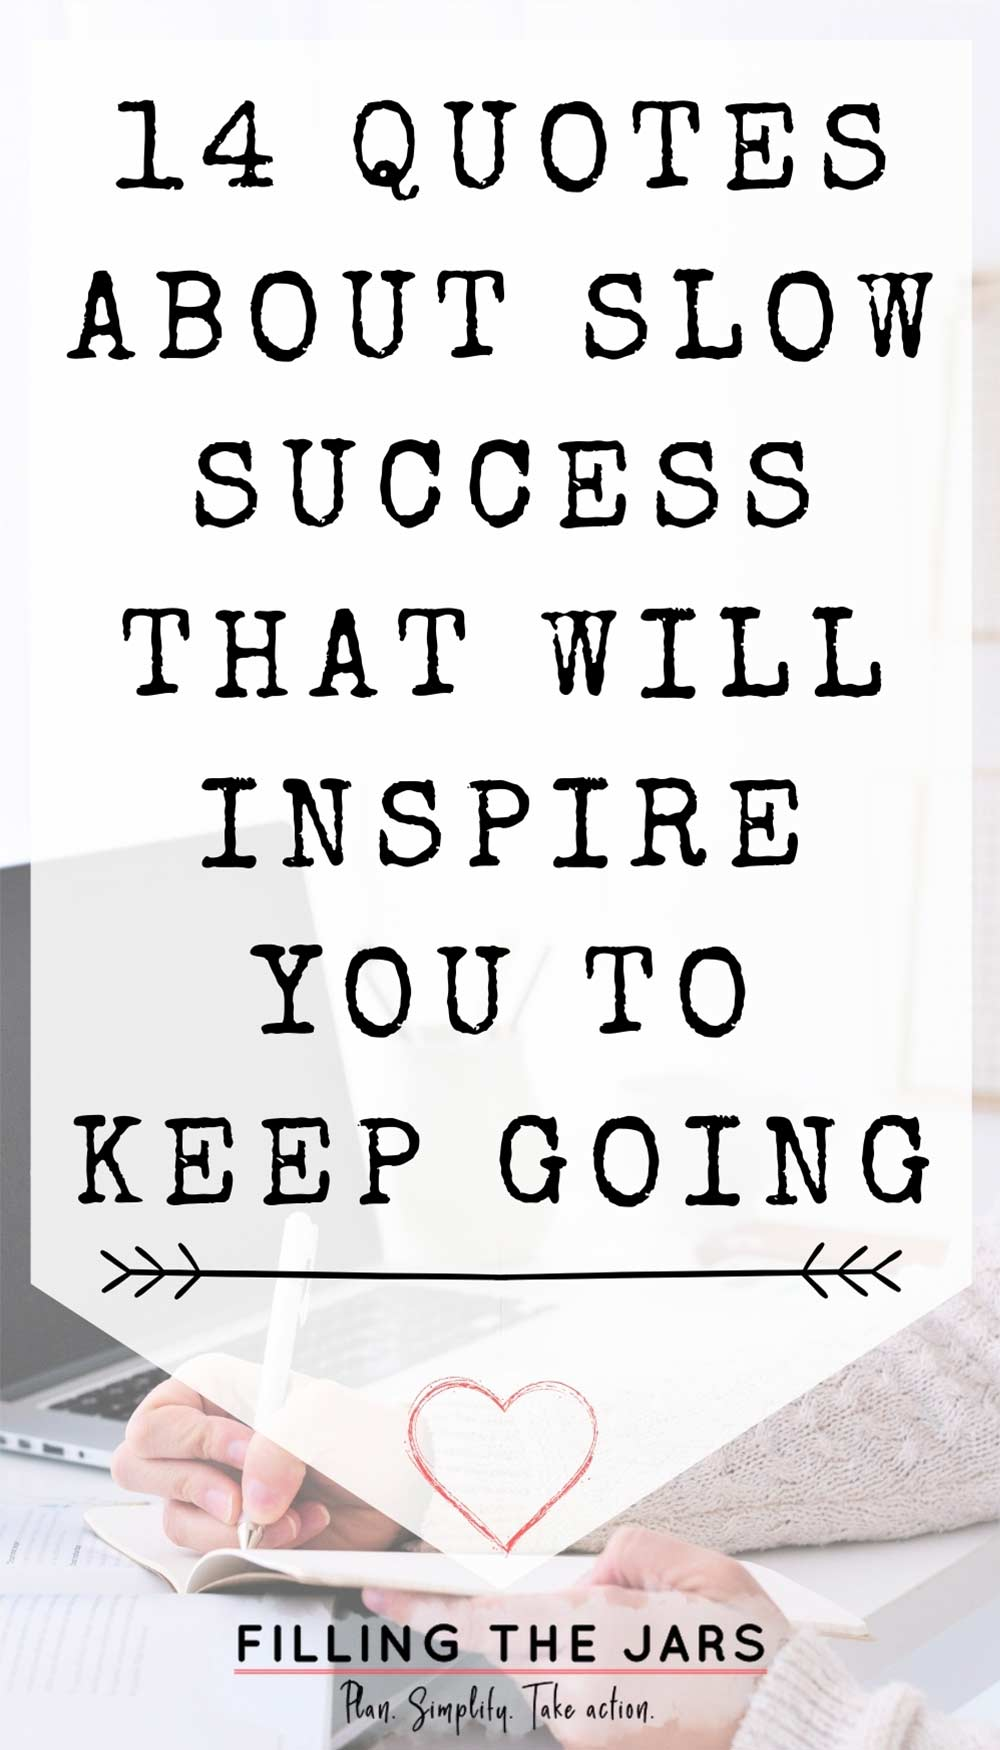 Text quotes about slow success that will inspire you to keep going on white background over image of female hands writing in book at white desk.